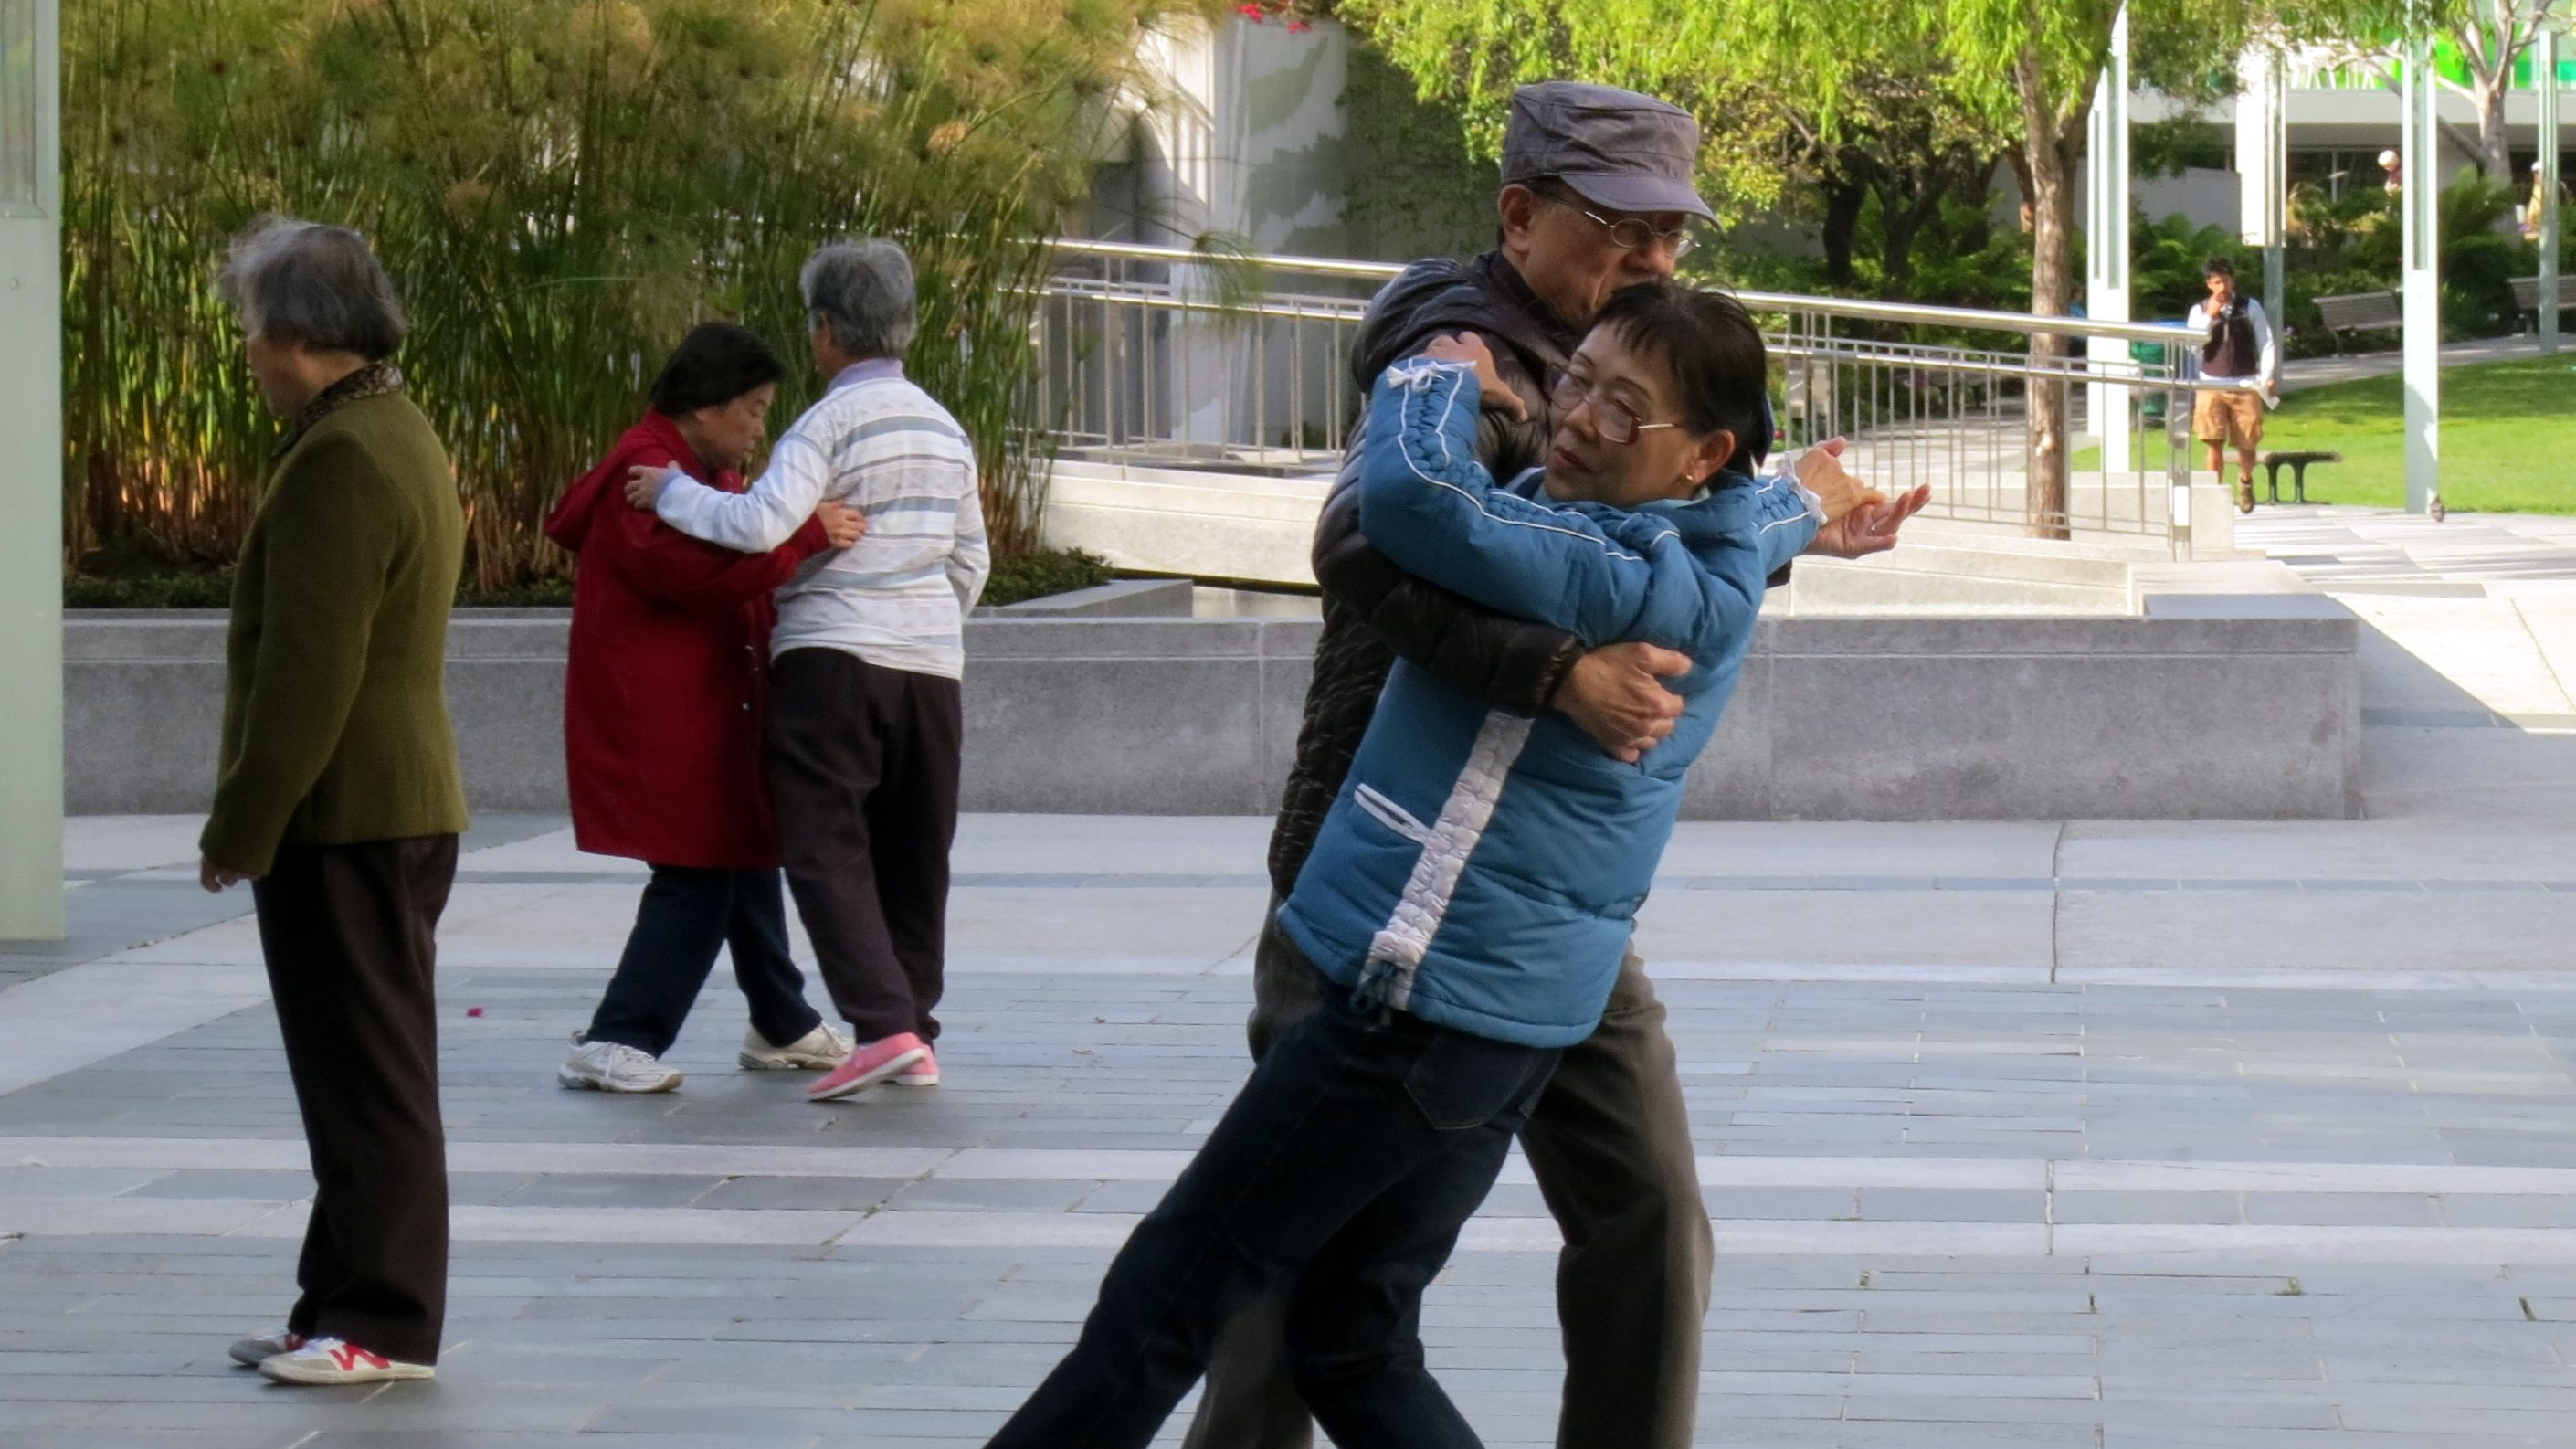 Pairs of older adults dance in an outdoor park.